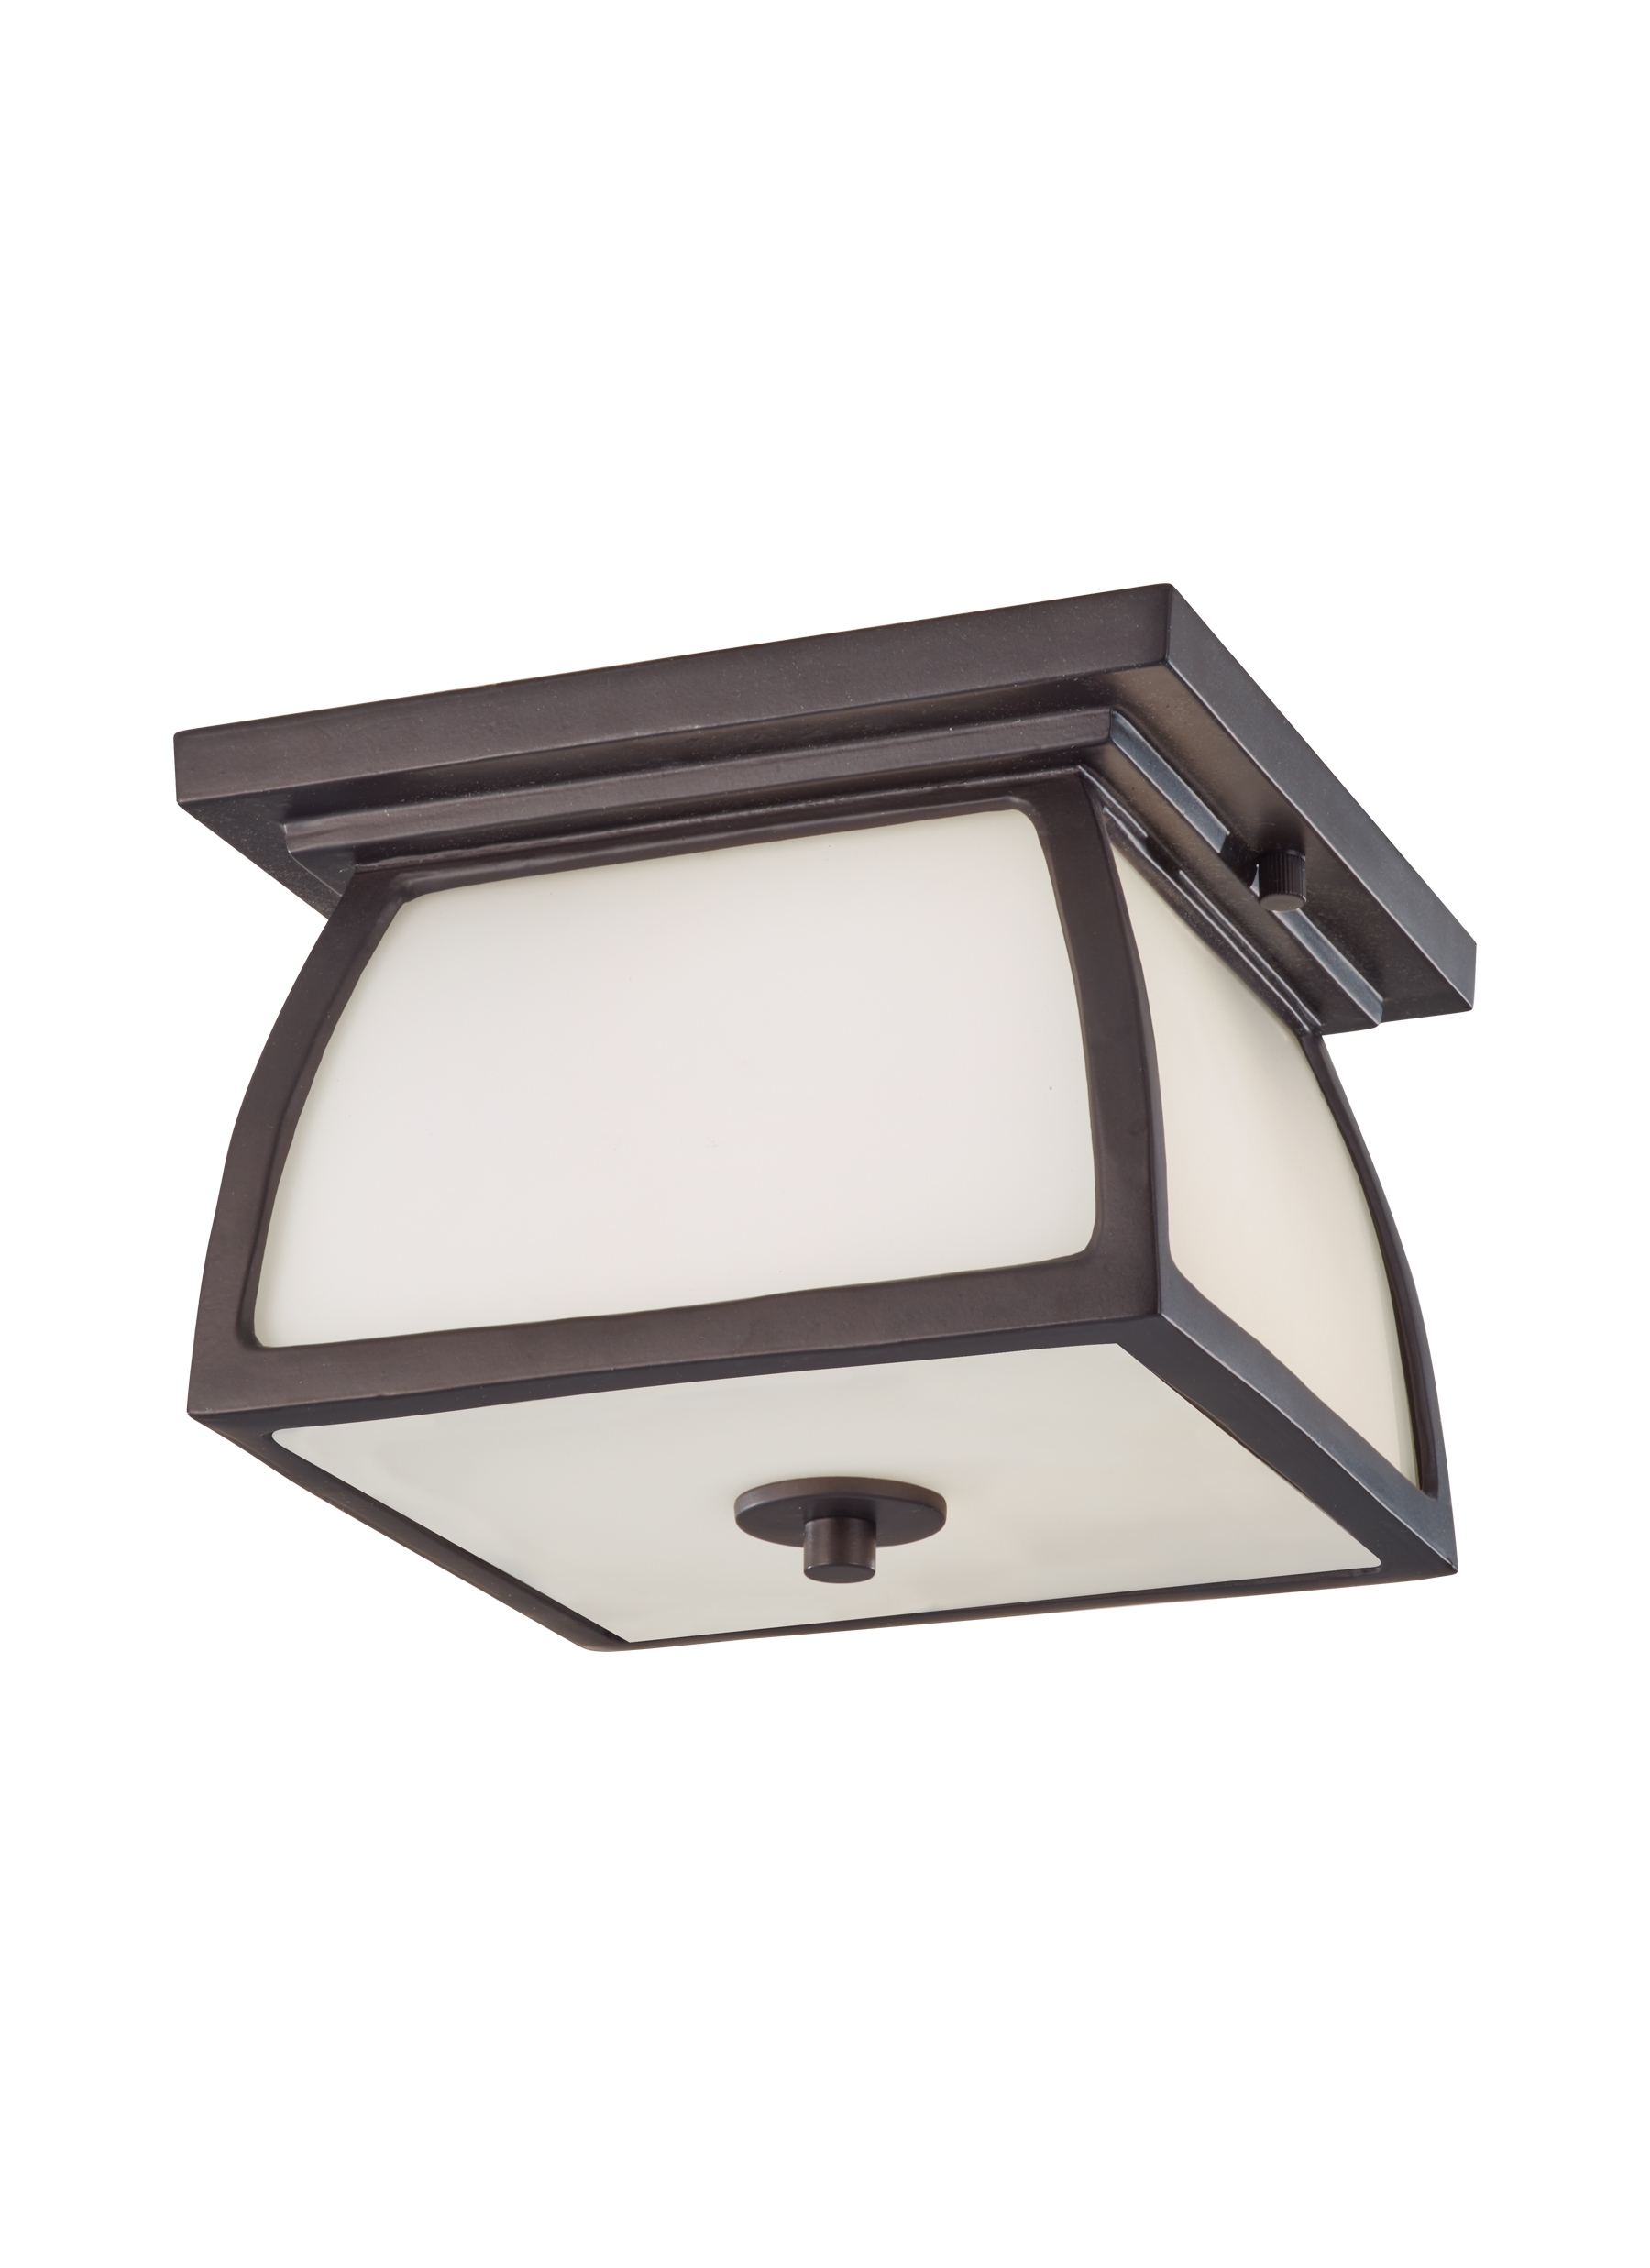 Ol8513orb1 light outdoor flushmountoil rubbed bronze loading zoom aloadofball Images